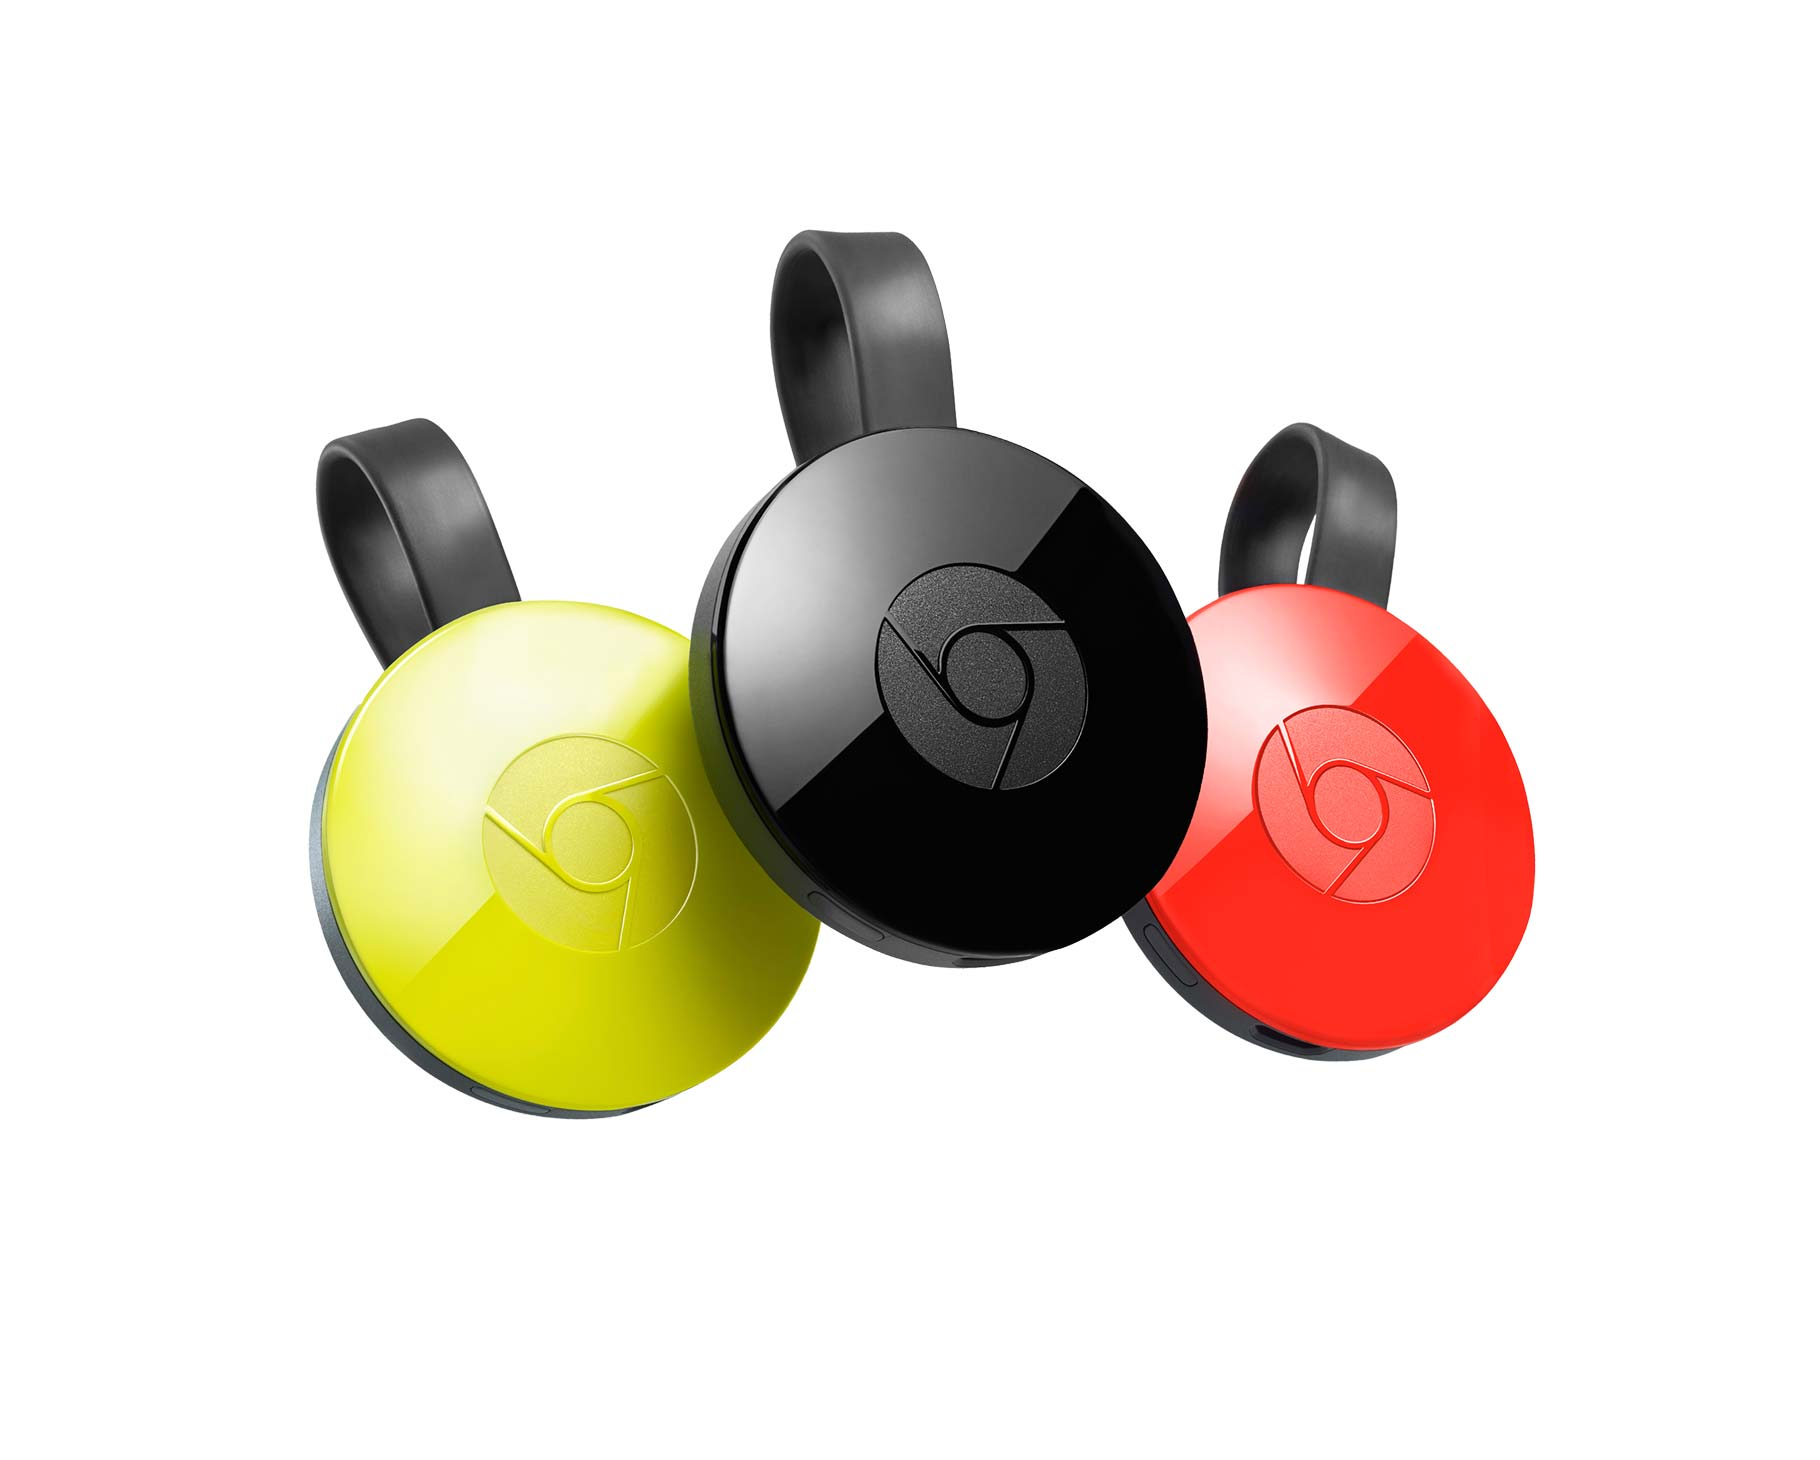 How to Setup Google Chromecast